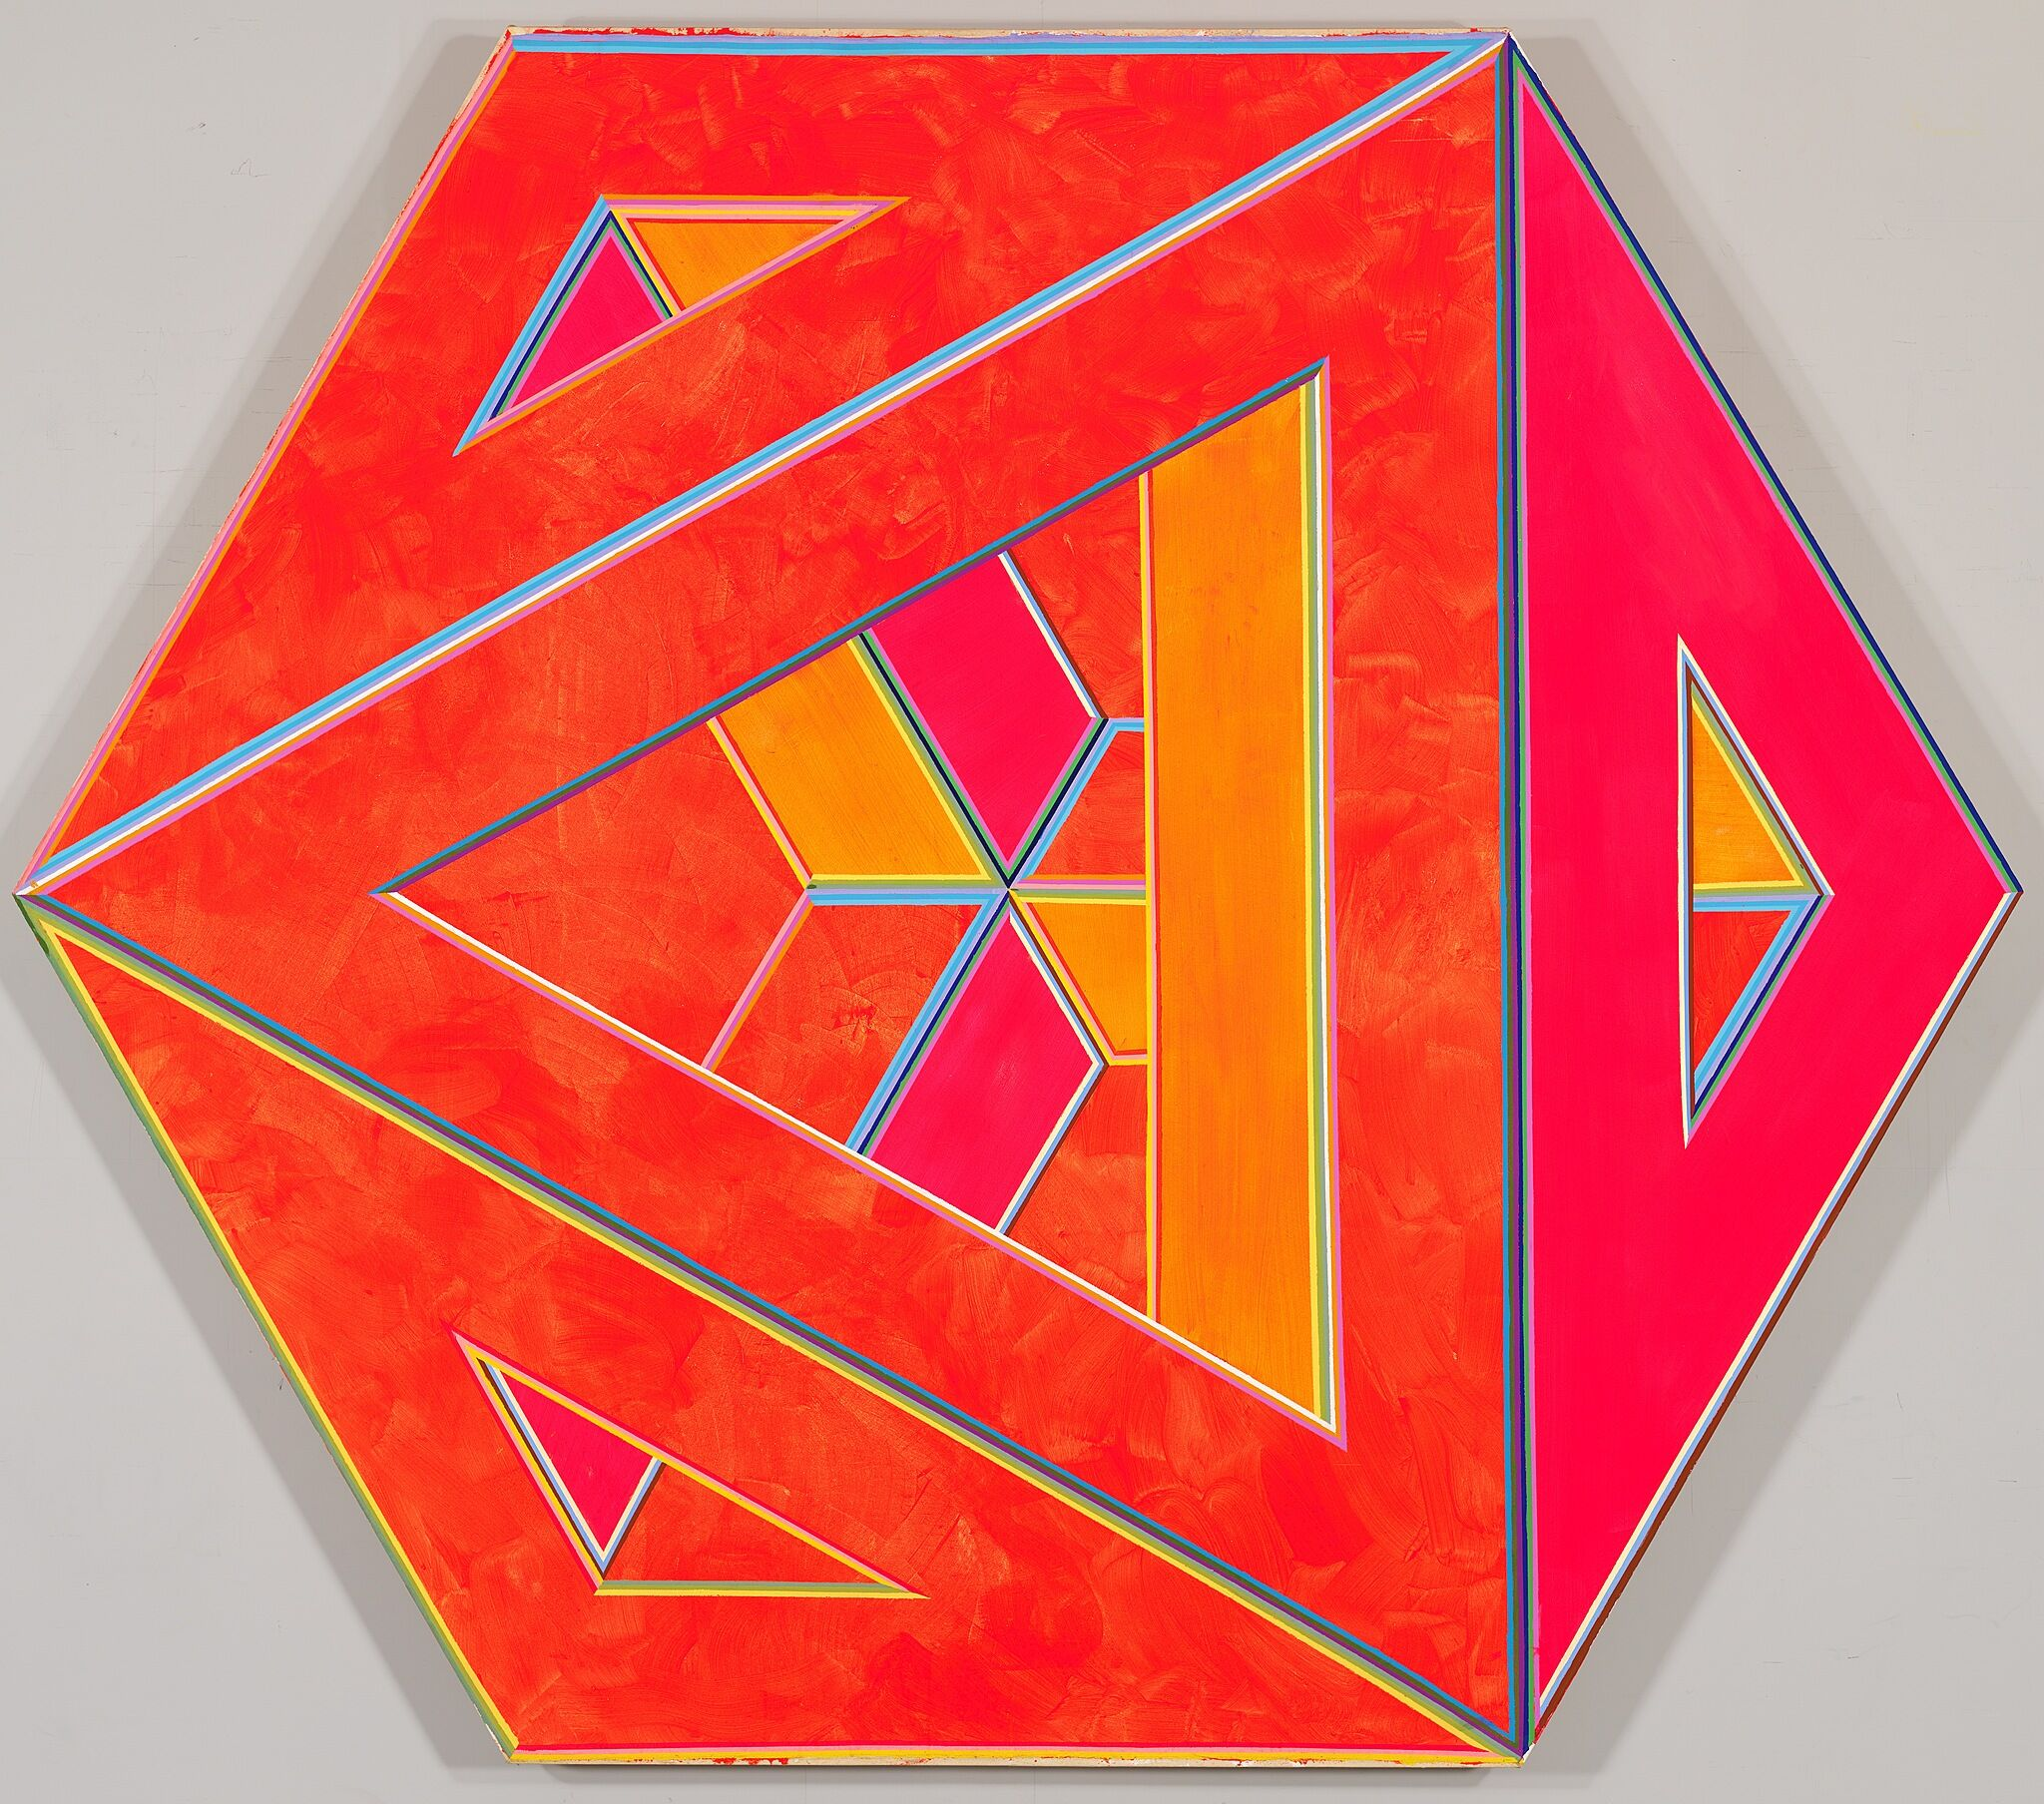 An orange septehedron-shaped canvas